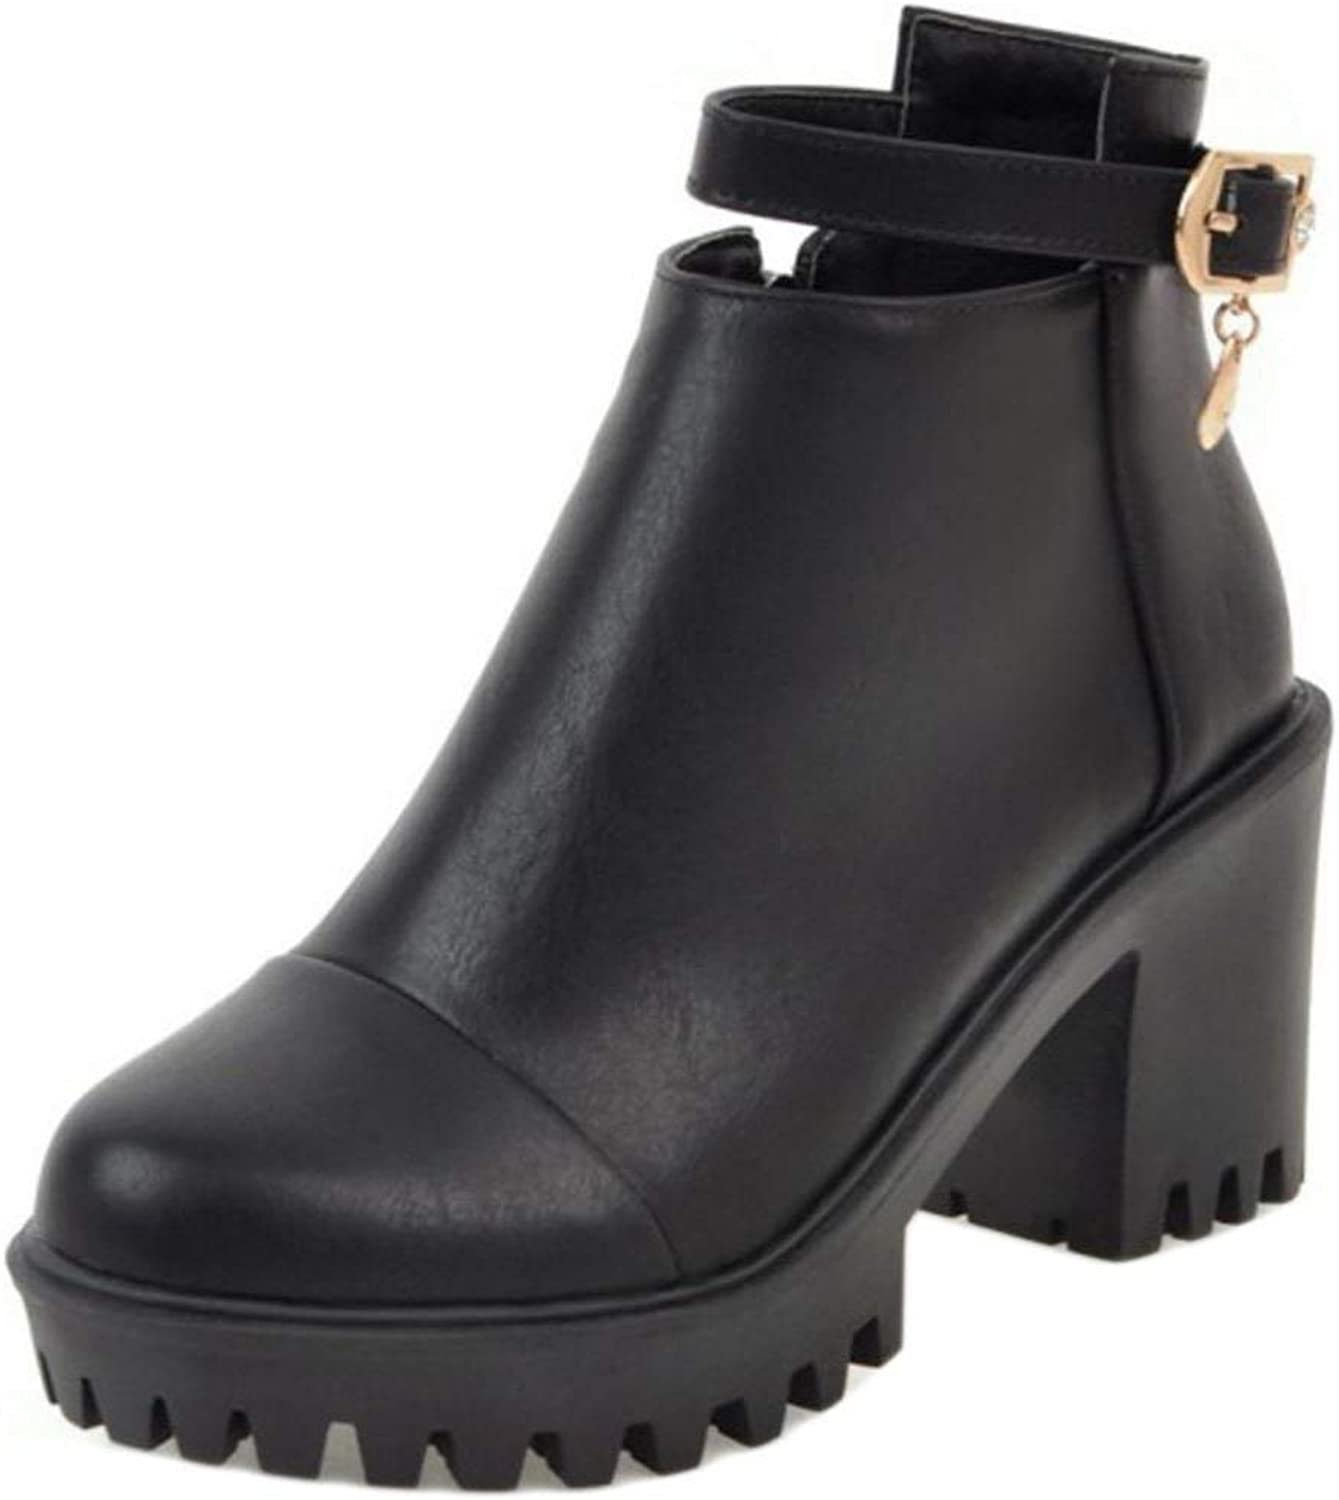 Unm Women's Fashion Boots with Zipper